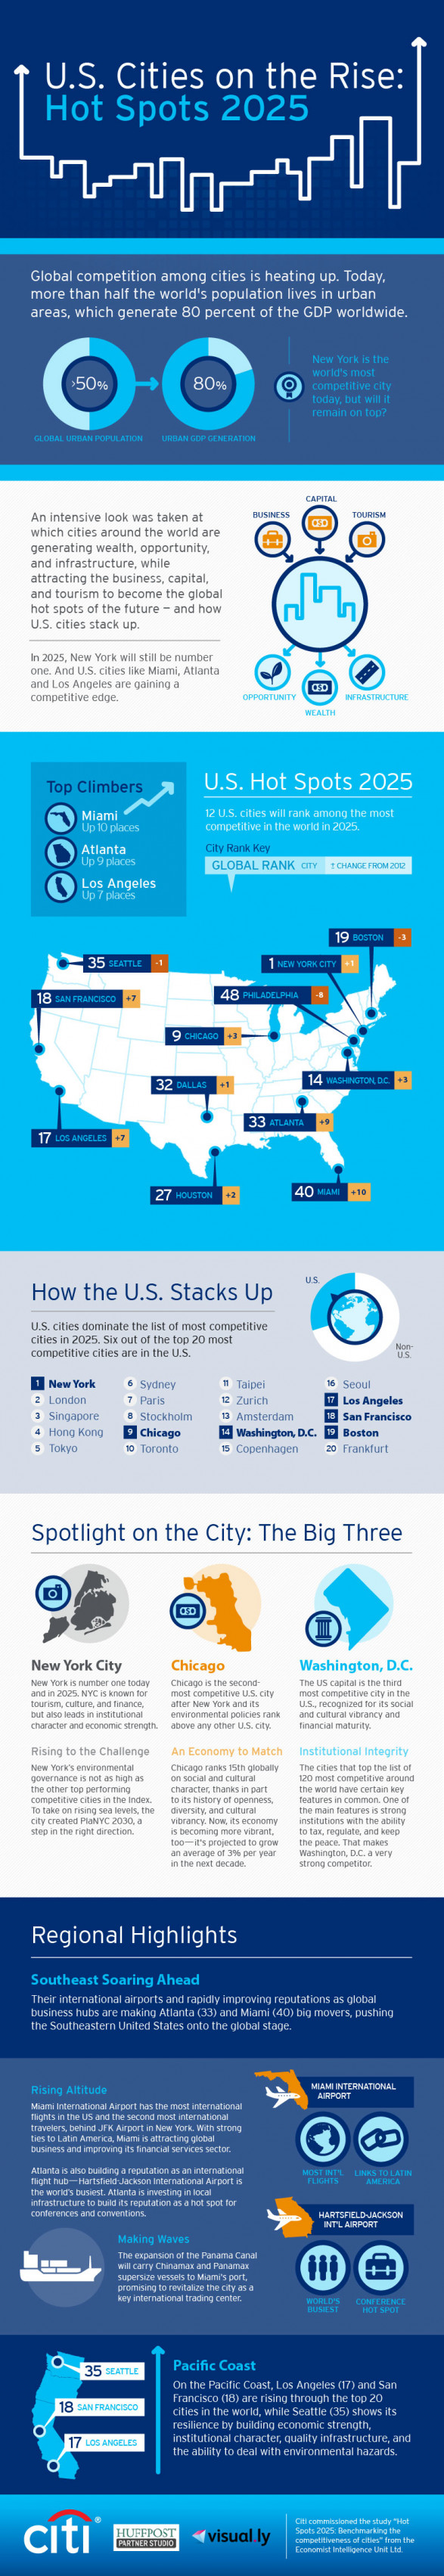 U.S. Cities on the Rise: Hot Spots 2025